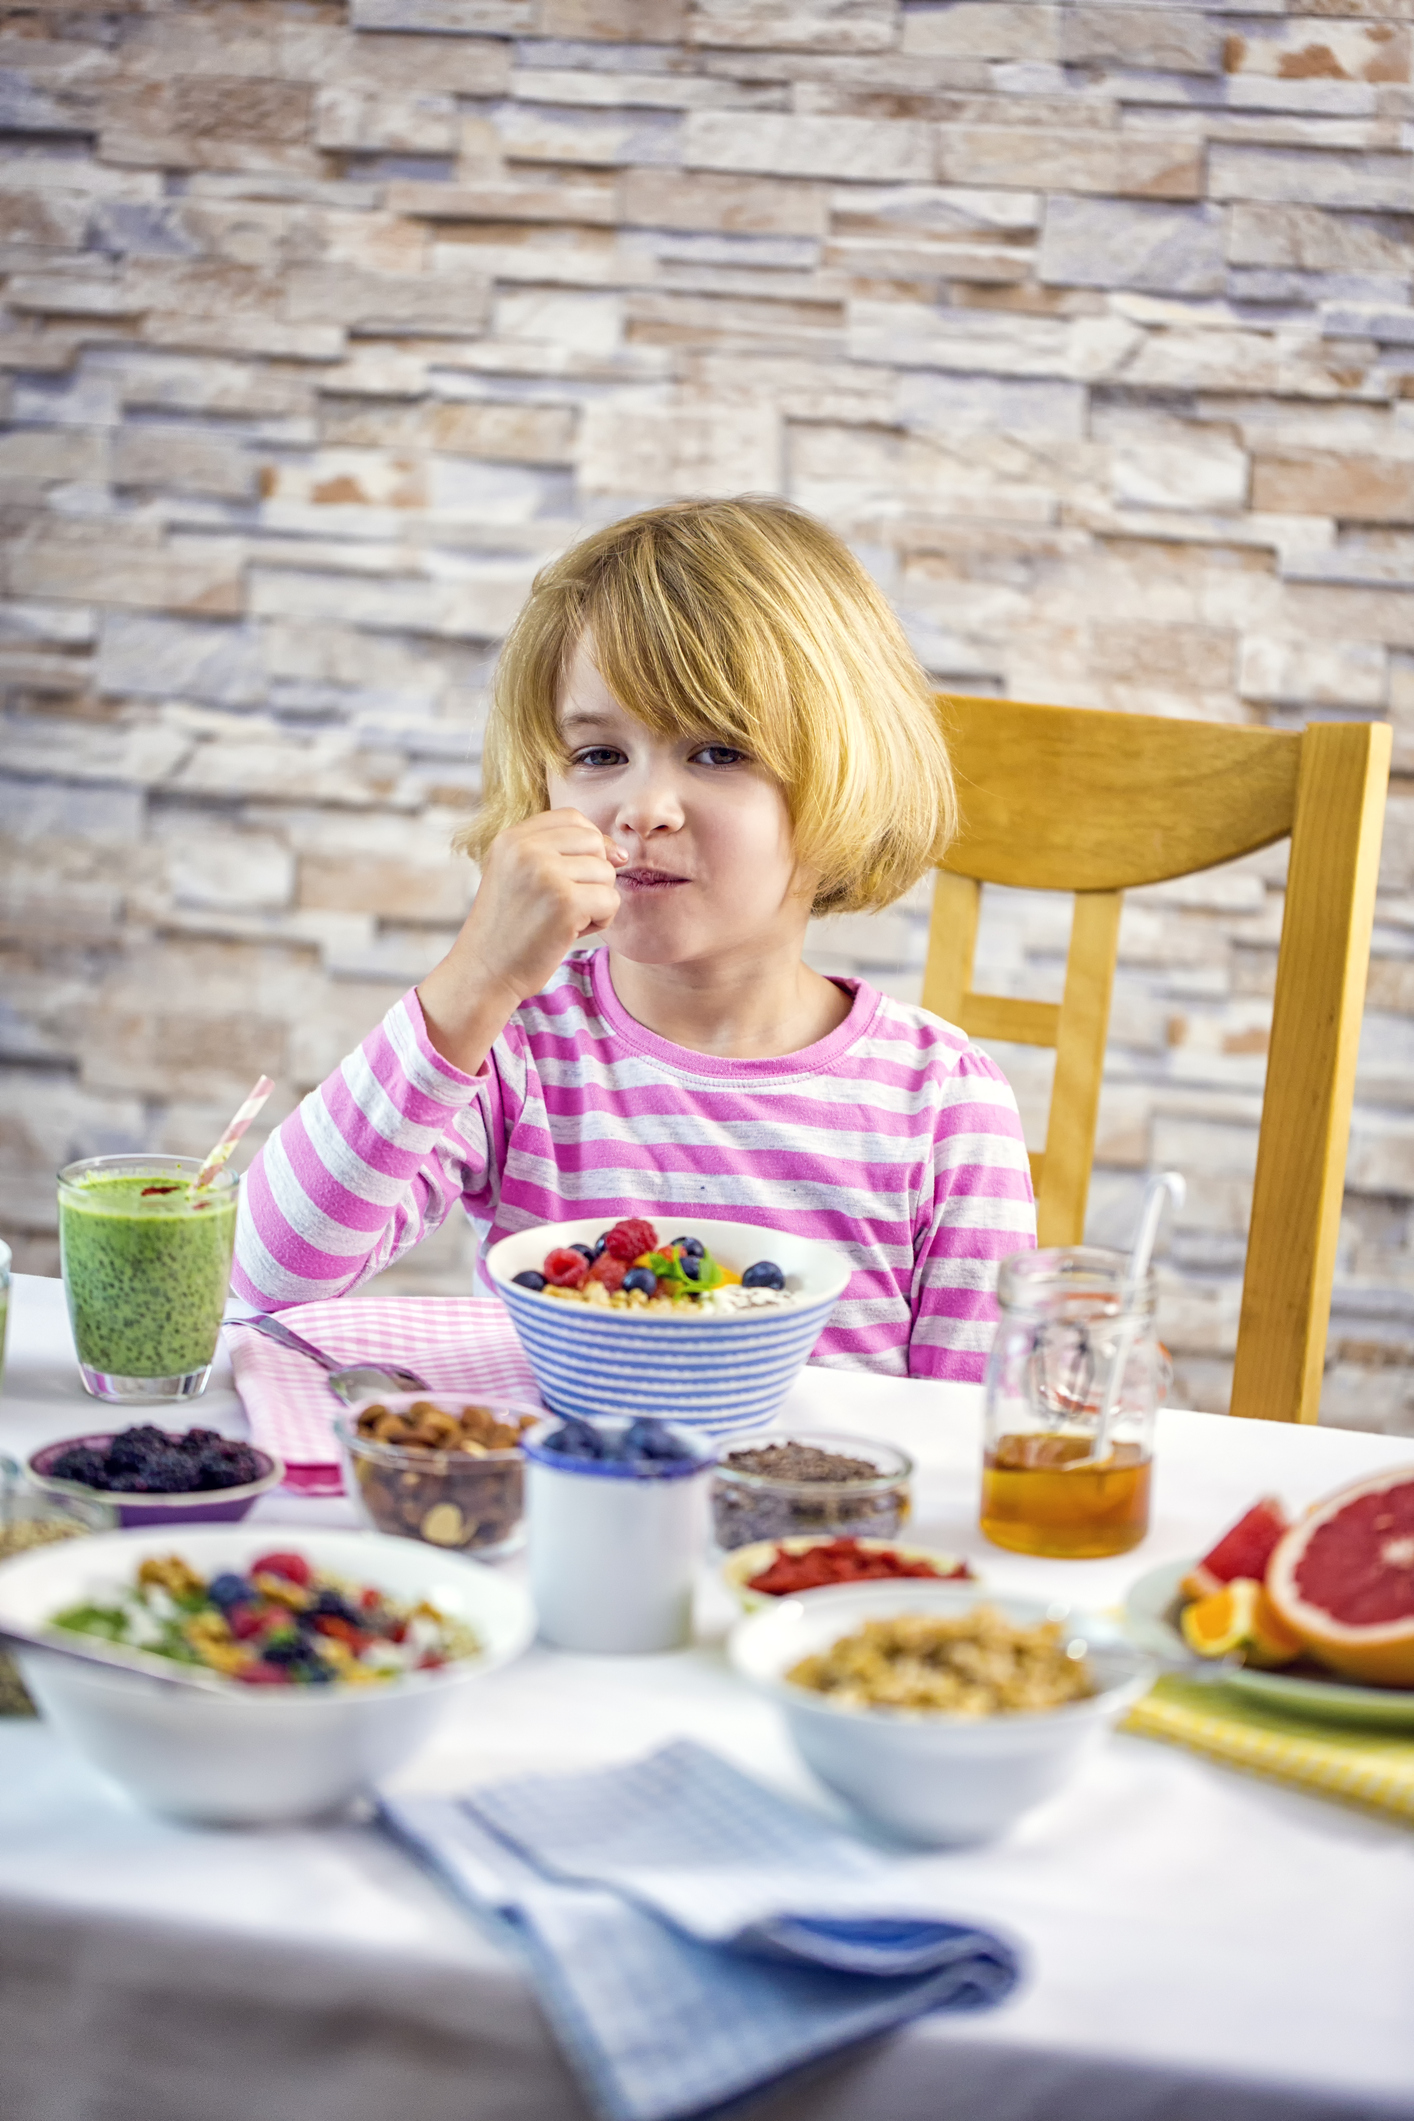 We are never too young to eat antioxidant-rich food, for our health and skin. The more we eat, the more our children will eat.